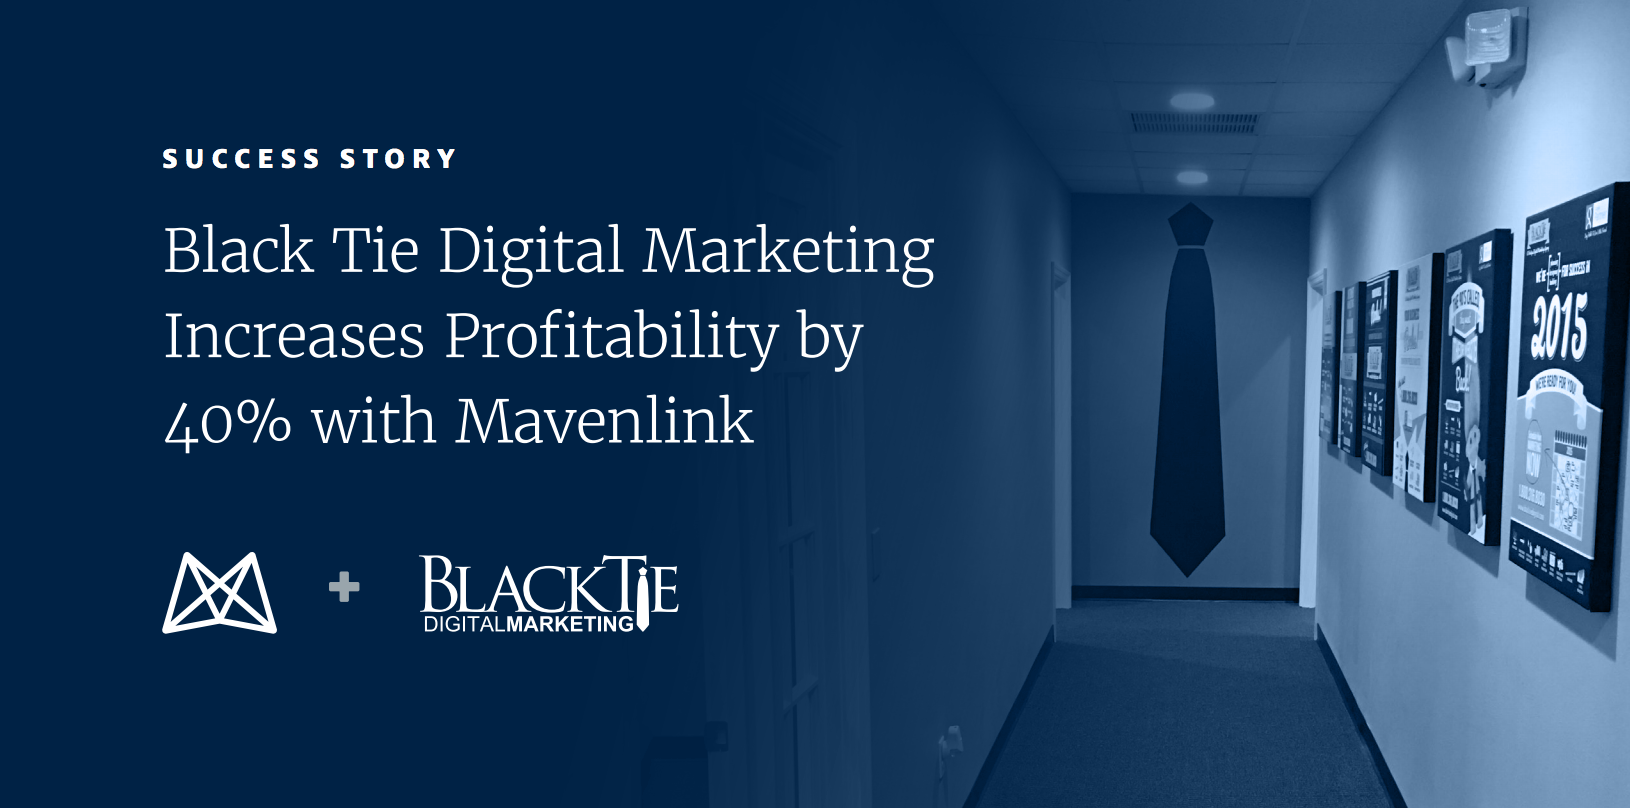 Black Tie Digital Marketing Case Study